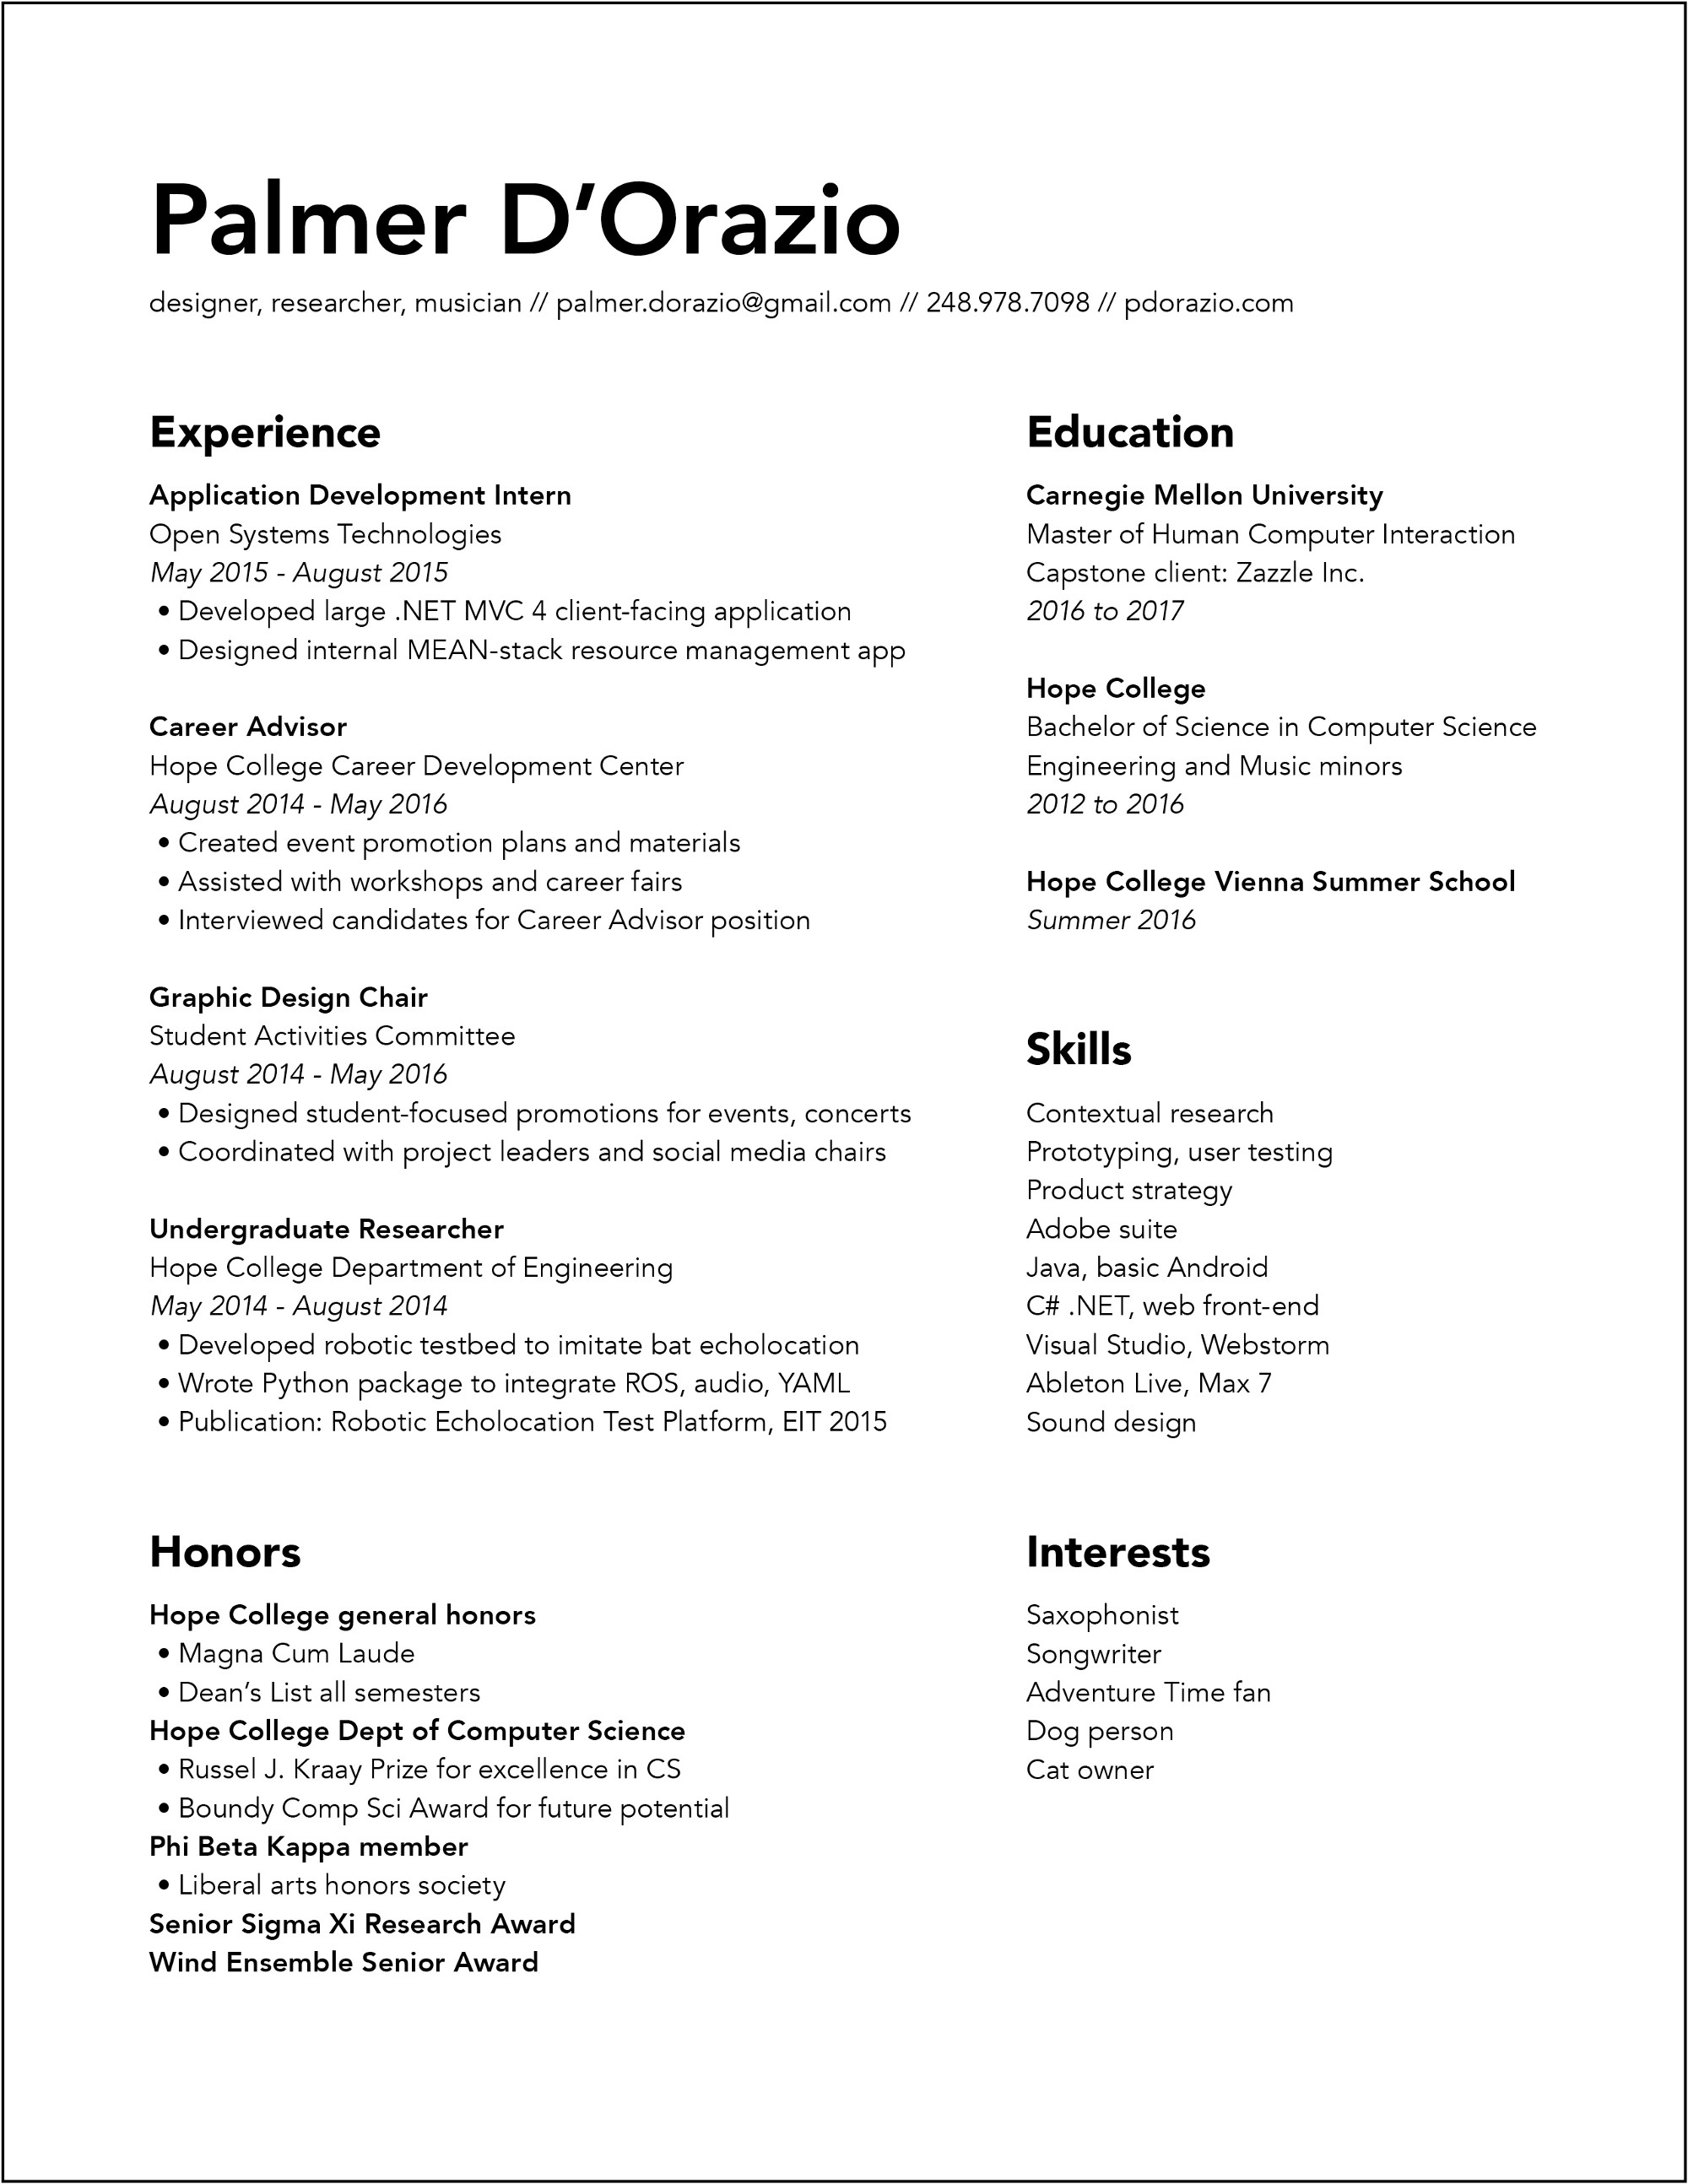 Resume Palmfolio Click The Image For A Pdf Version Here To Download